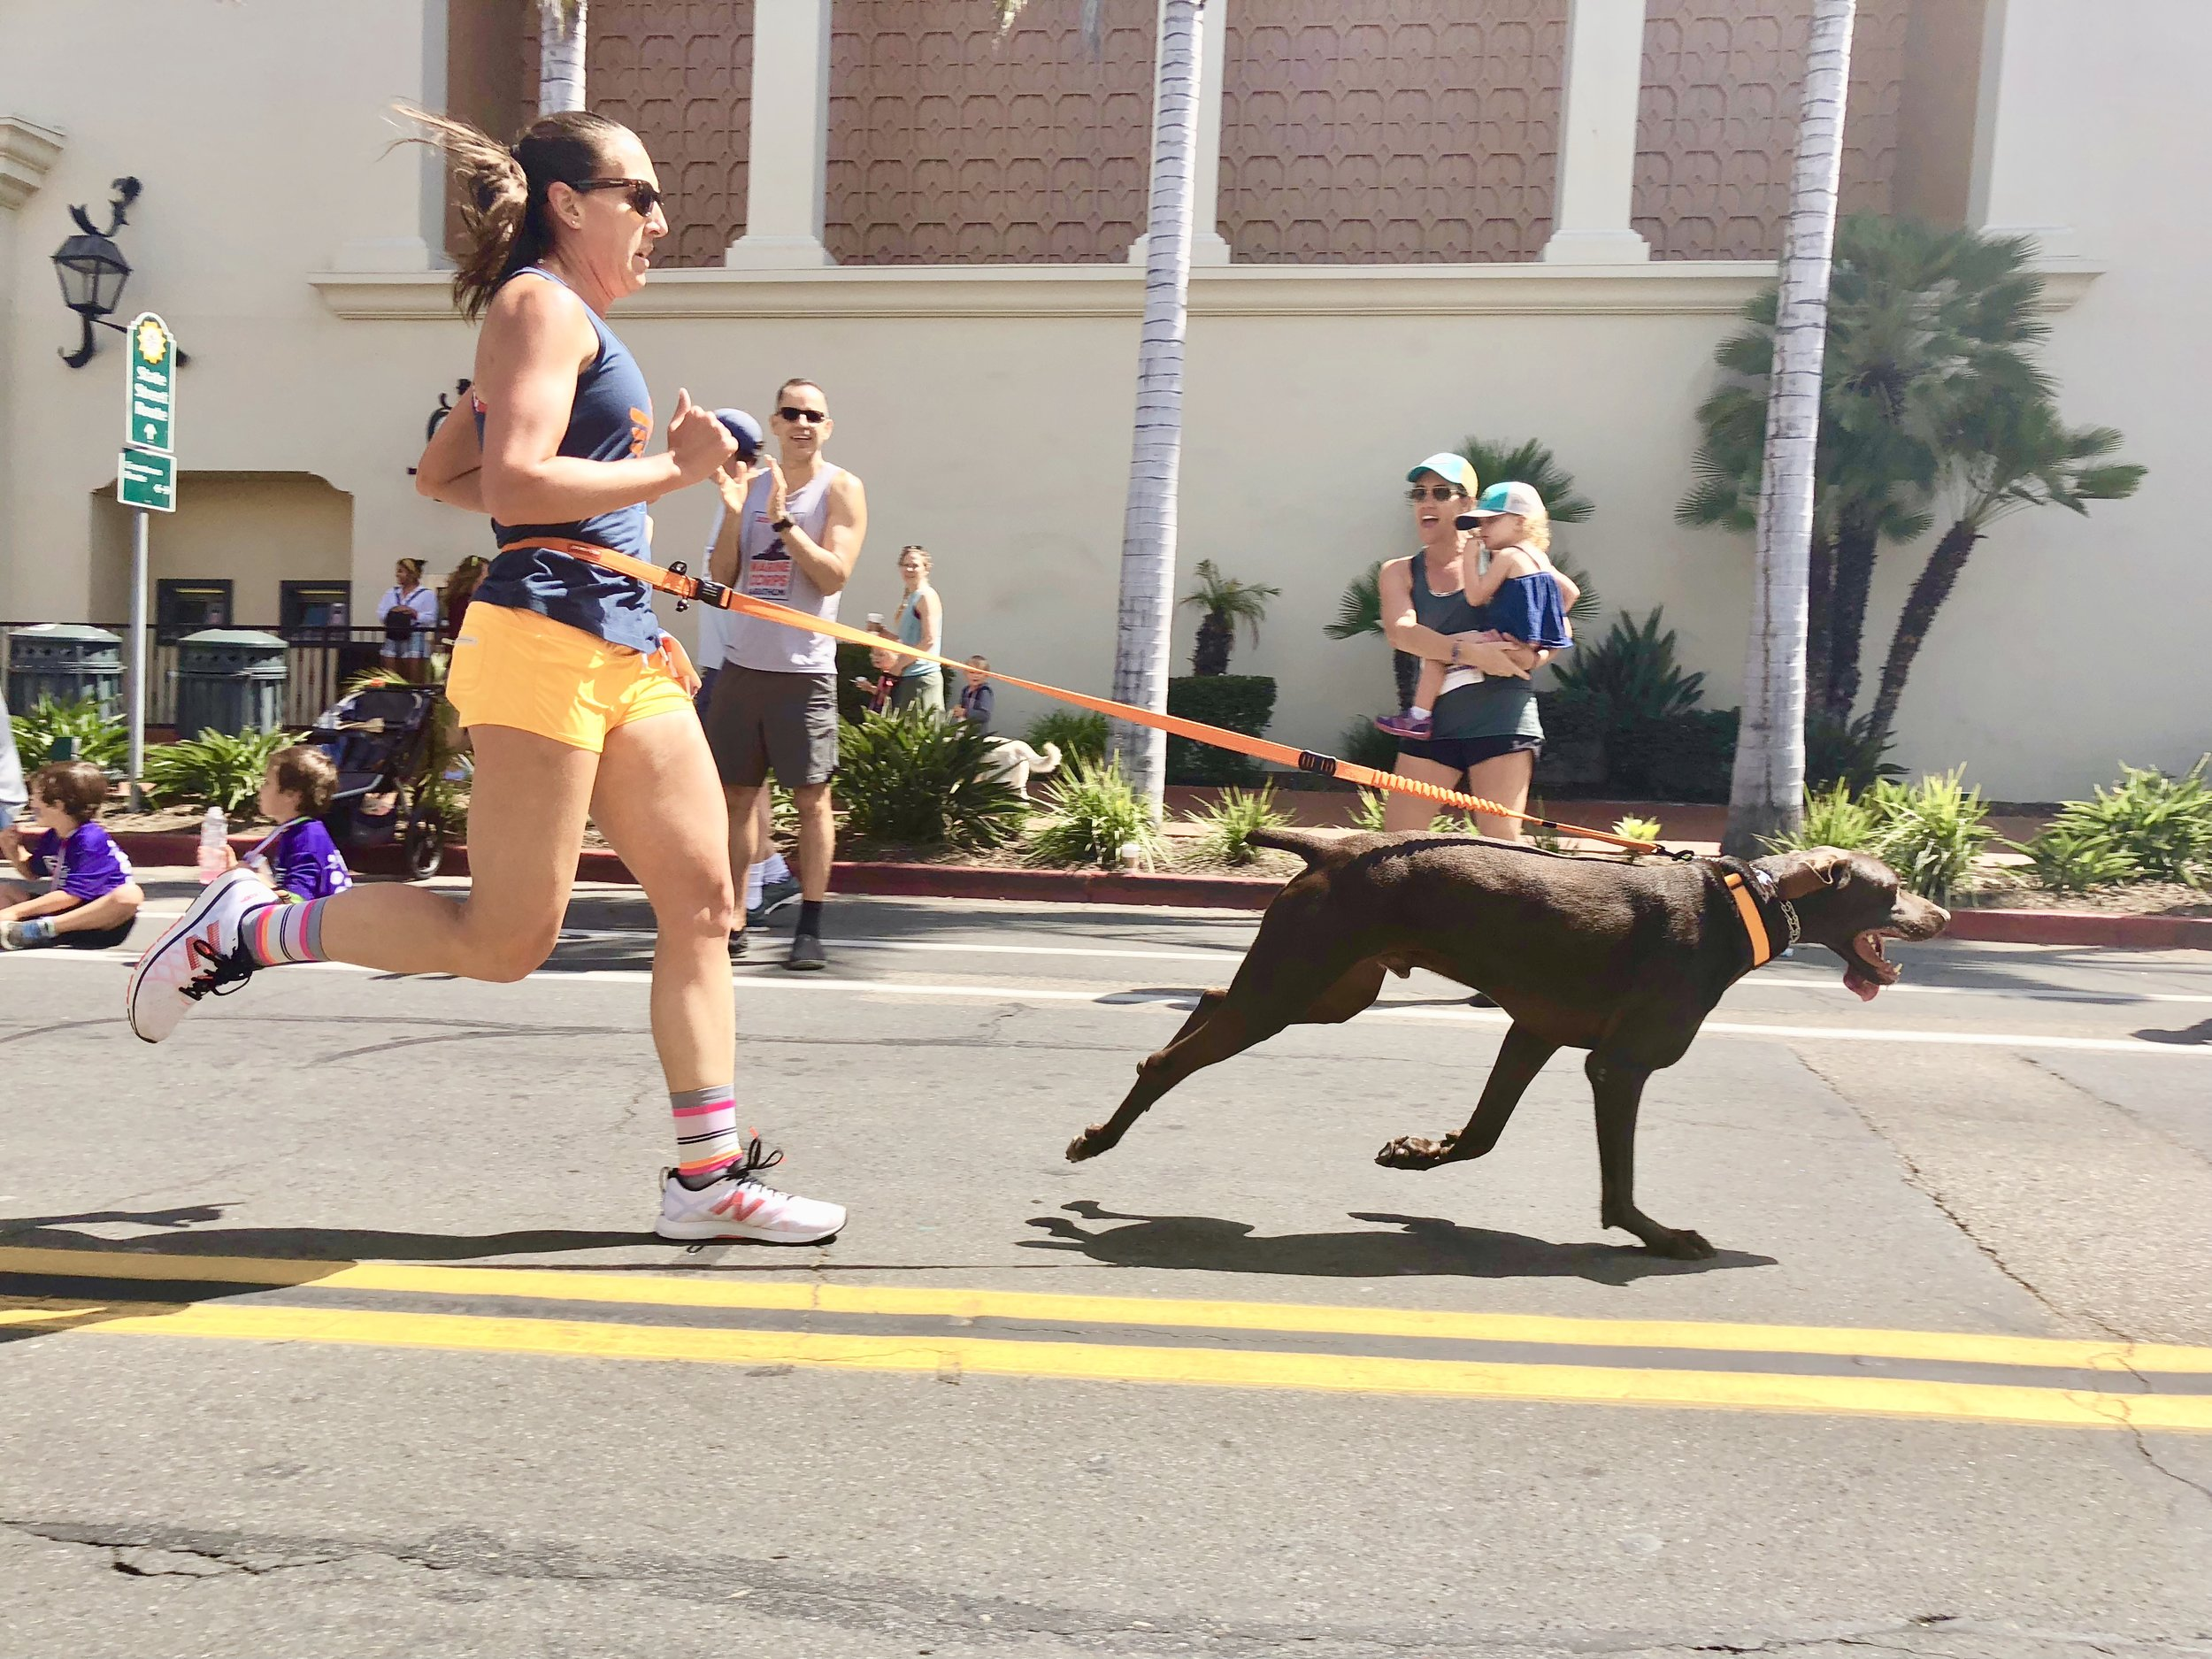 Kristiana & Griz cruising to the finish line at the State Street Mile's world famous Dog Mile.